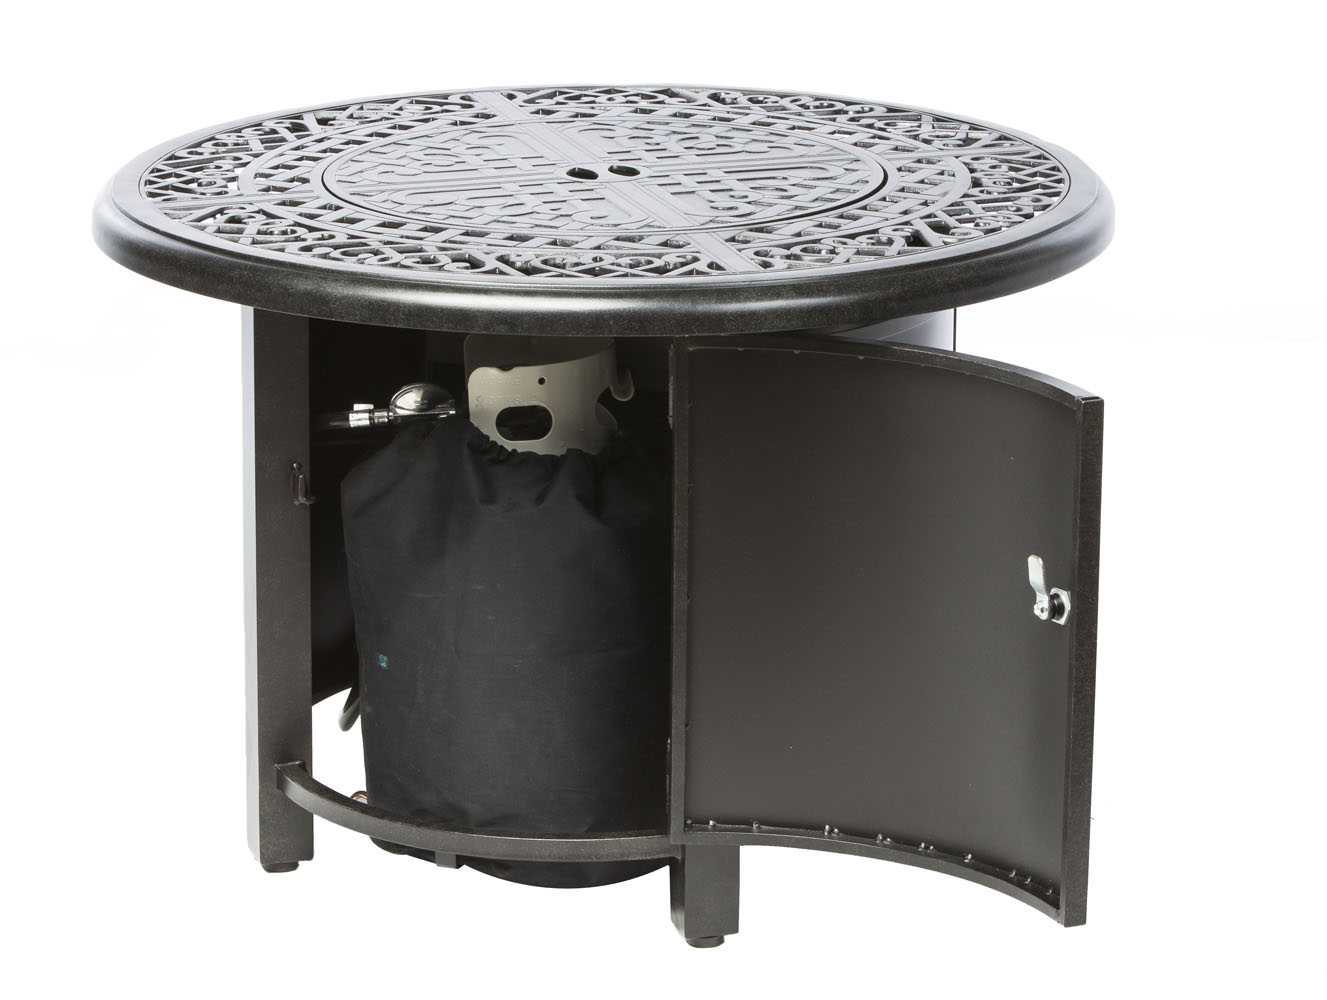 Alfresco Home Kinsale 36 Round Gas Fire Pit/Chat Table